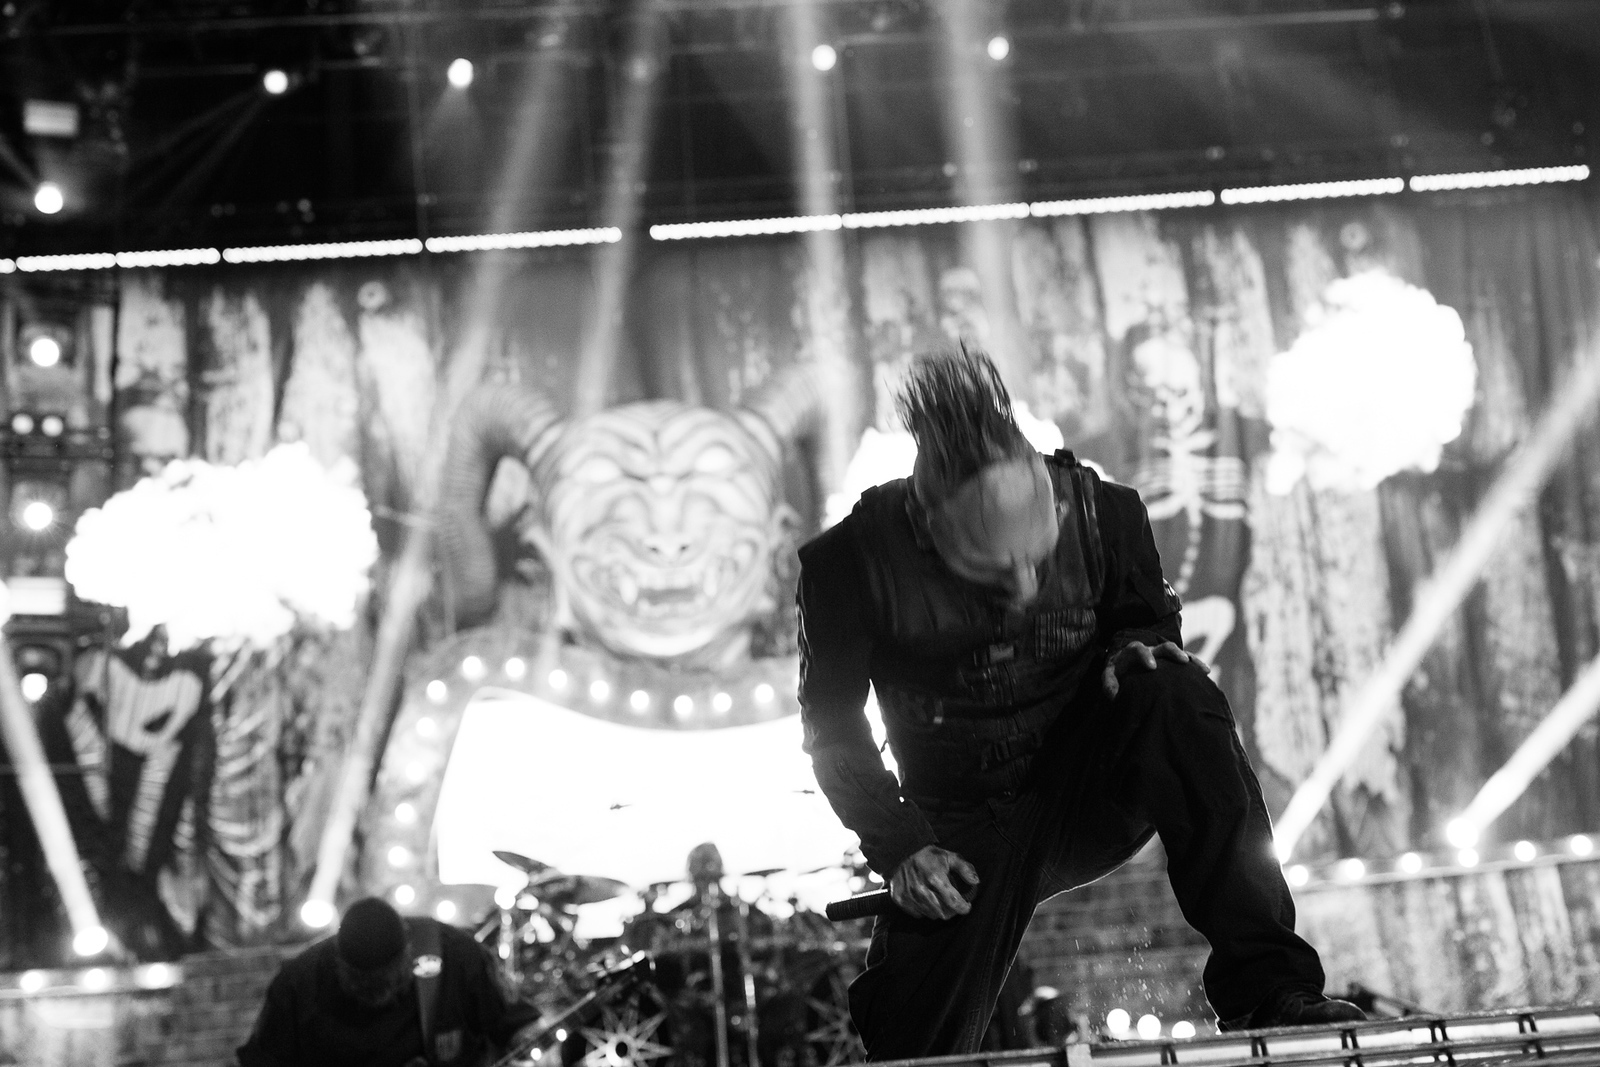 Corey Taylor of Slipknot by Adam Elmakias at Knotfest